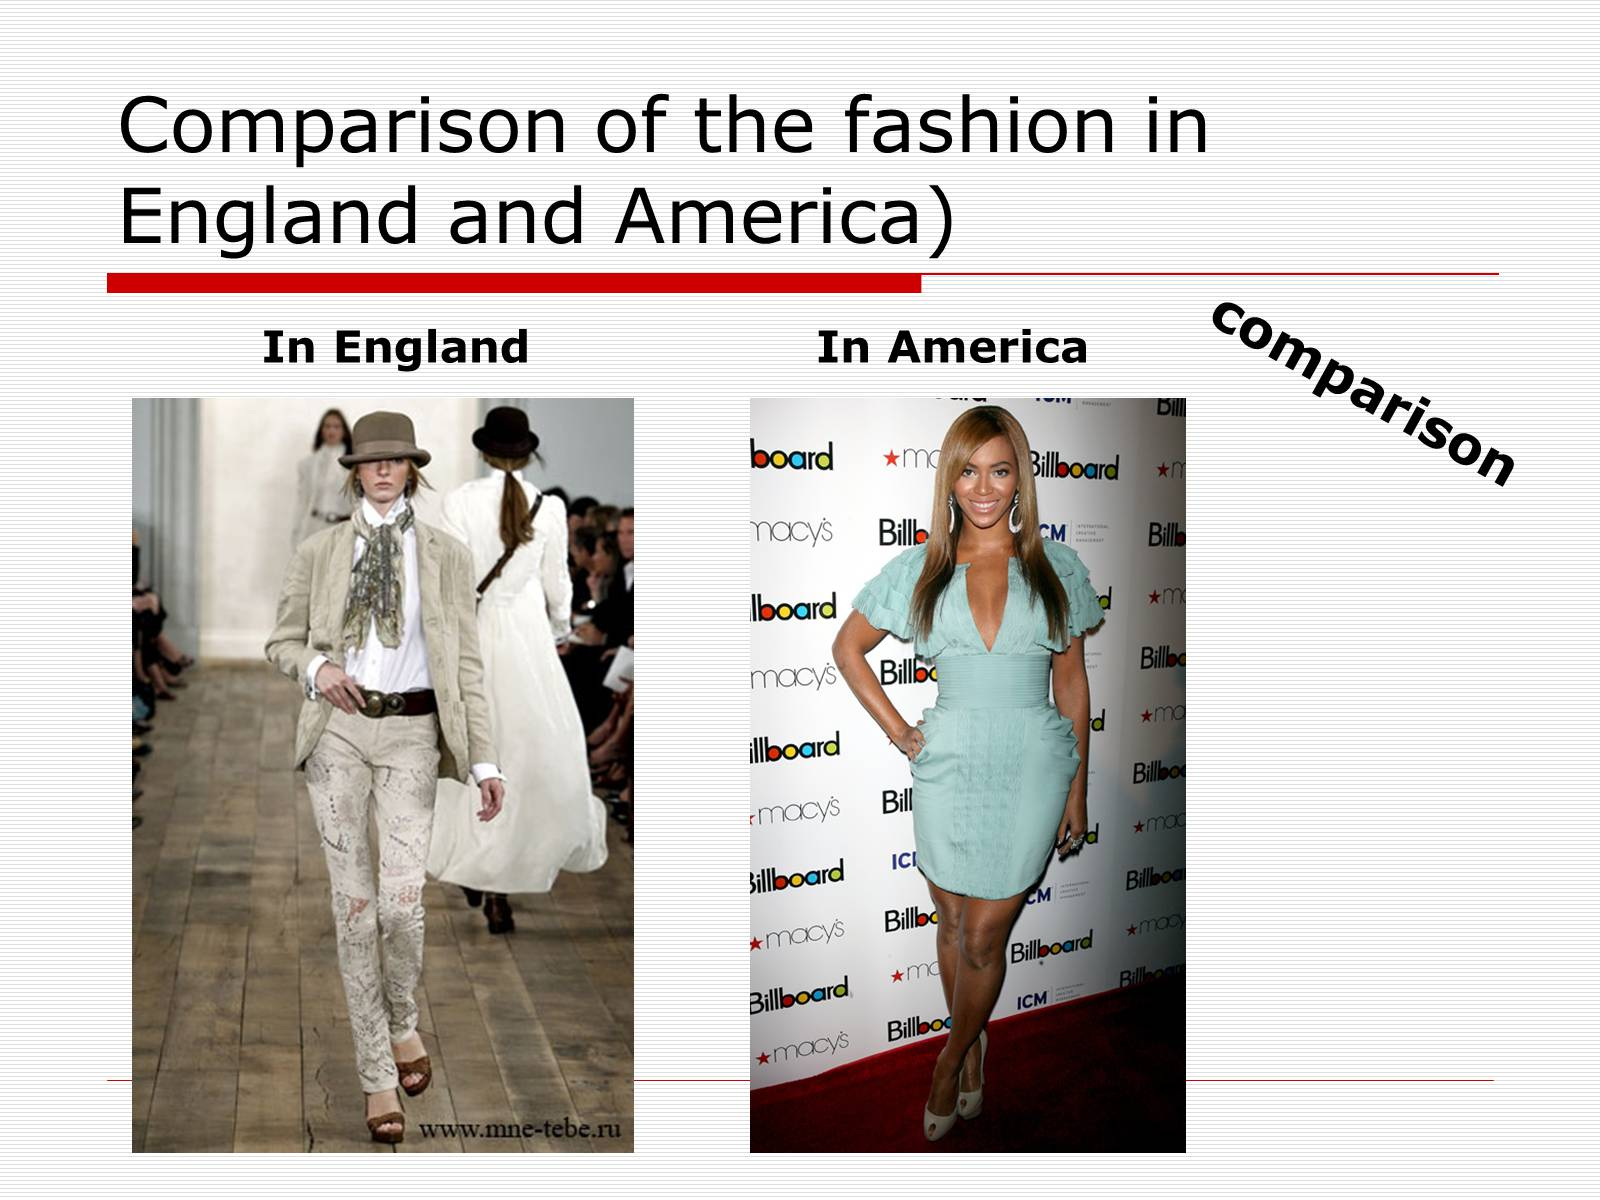 Презентація на тему «Comparison of the fashion in England and America» - Слайд #34